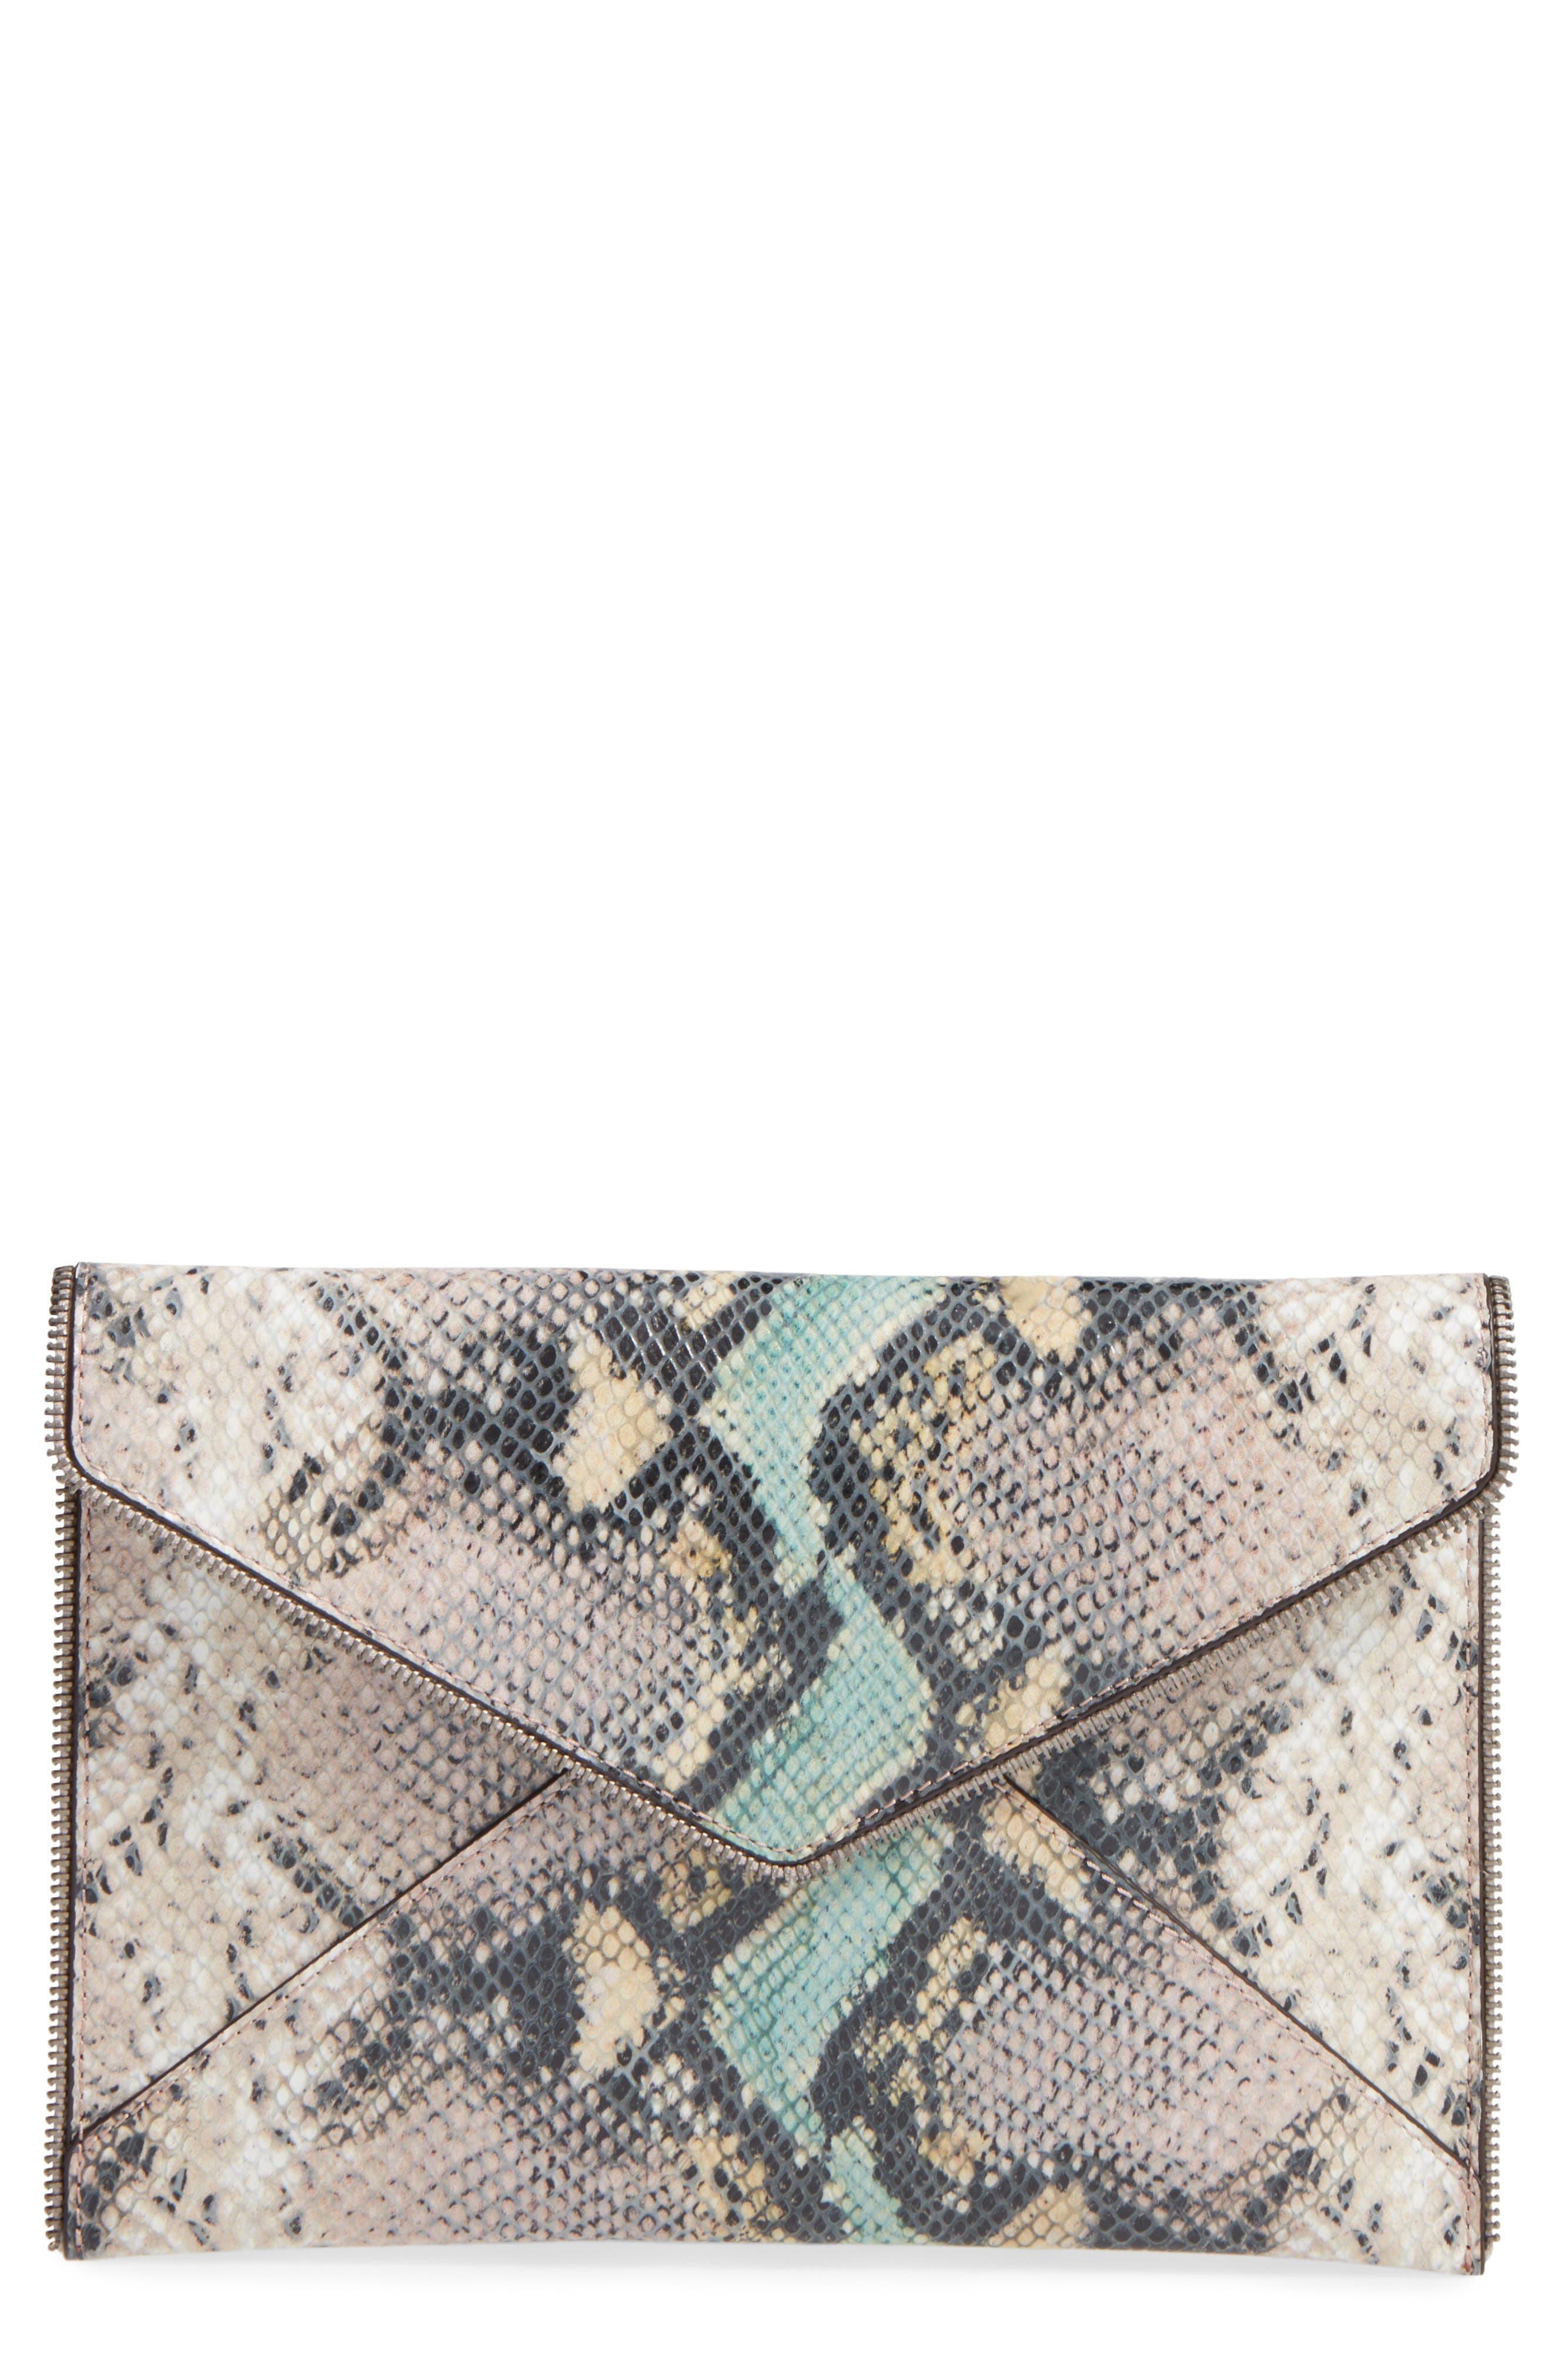 Alternate Image 1 Selected - Rebecca Minkoff Leo Snake Embossed Leather Clutch